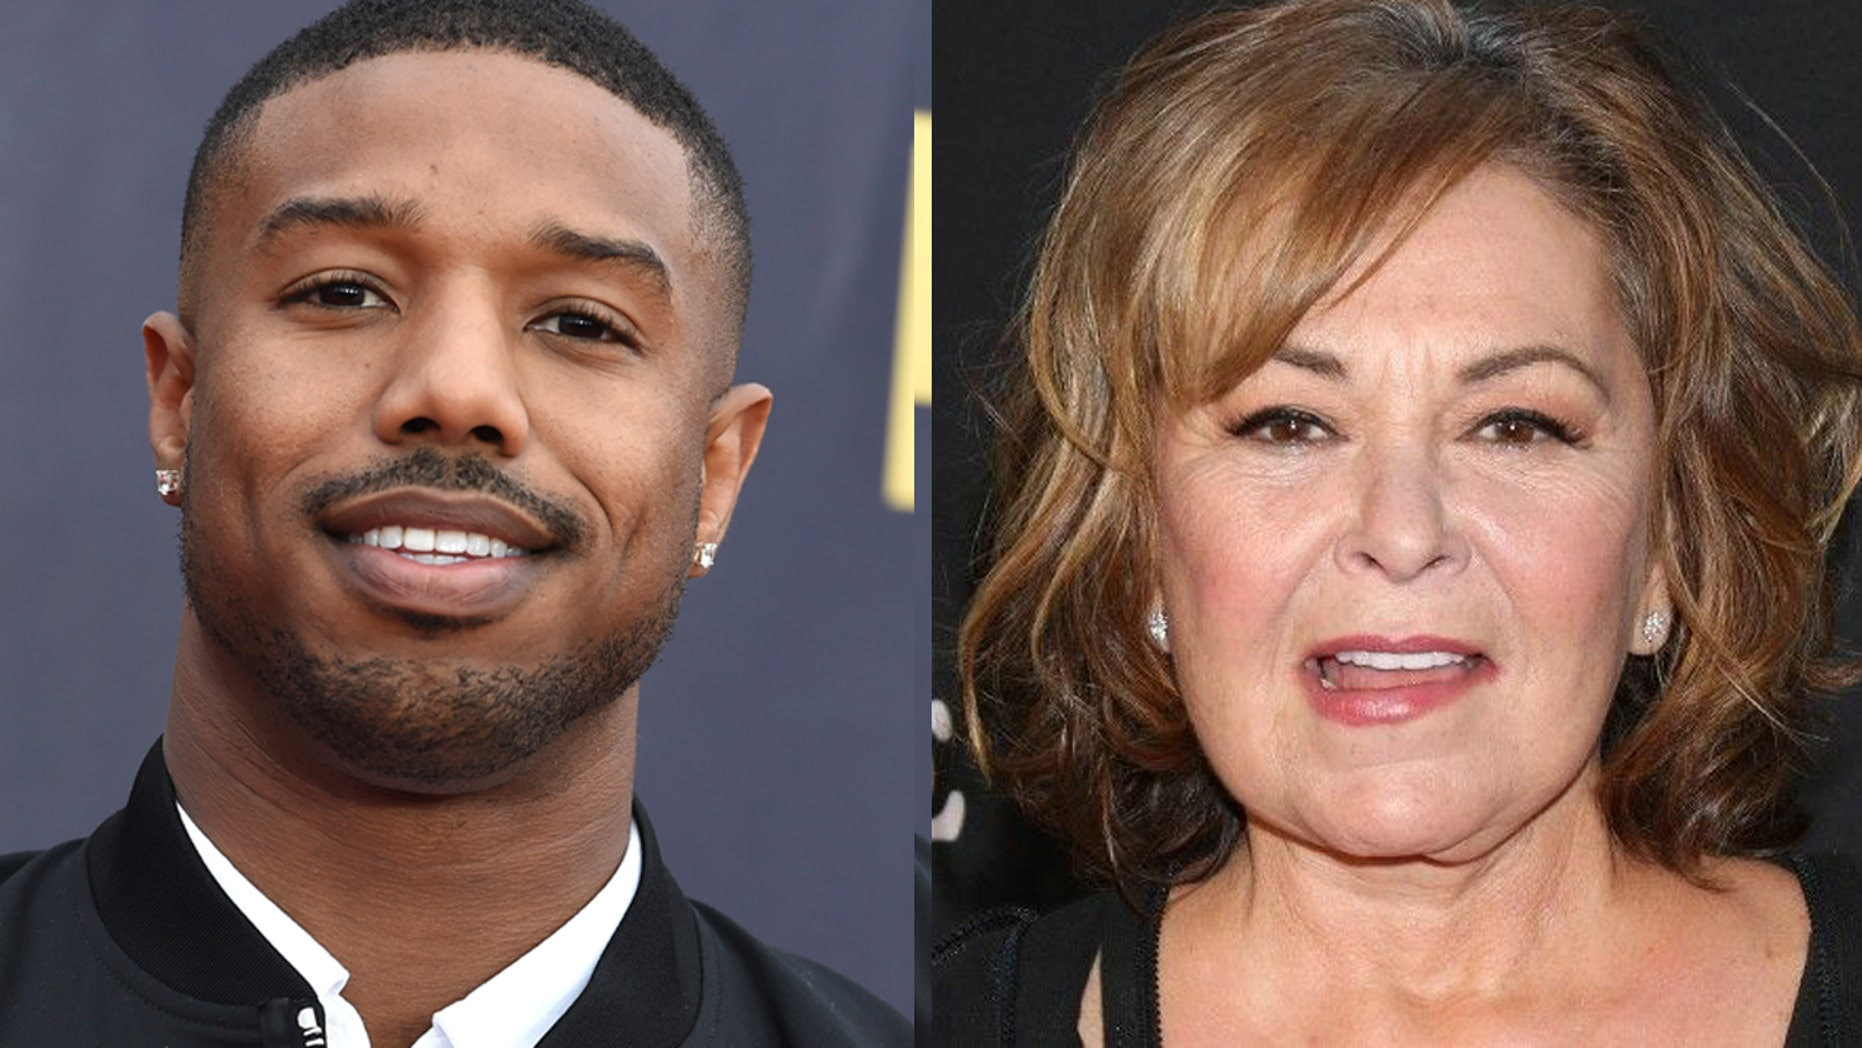 After winning the villian award at the MTV Movie and TV Awards, Michael B. Jordan joked that the award should have gone to Roseanne Barr after firing.